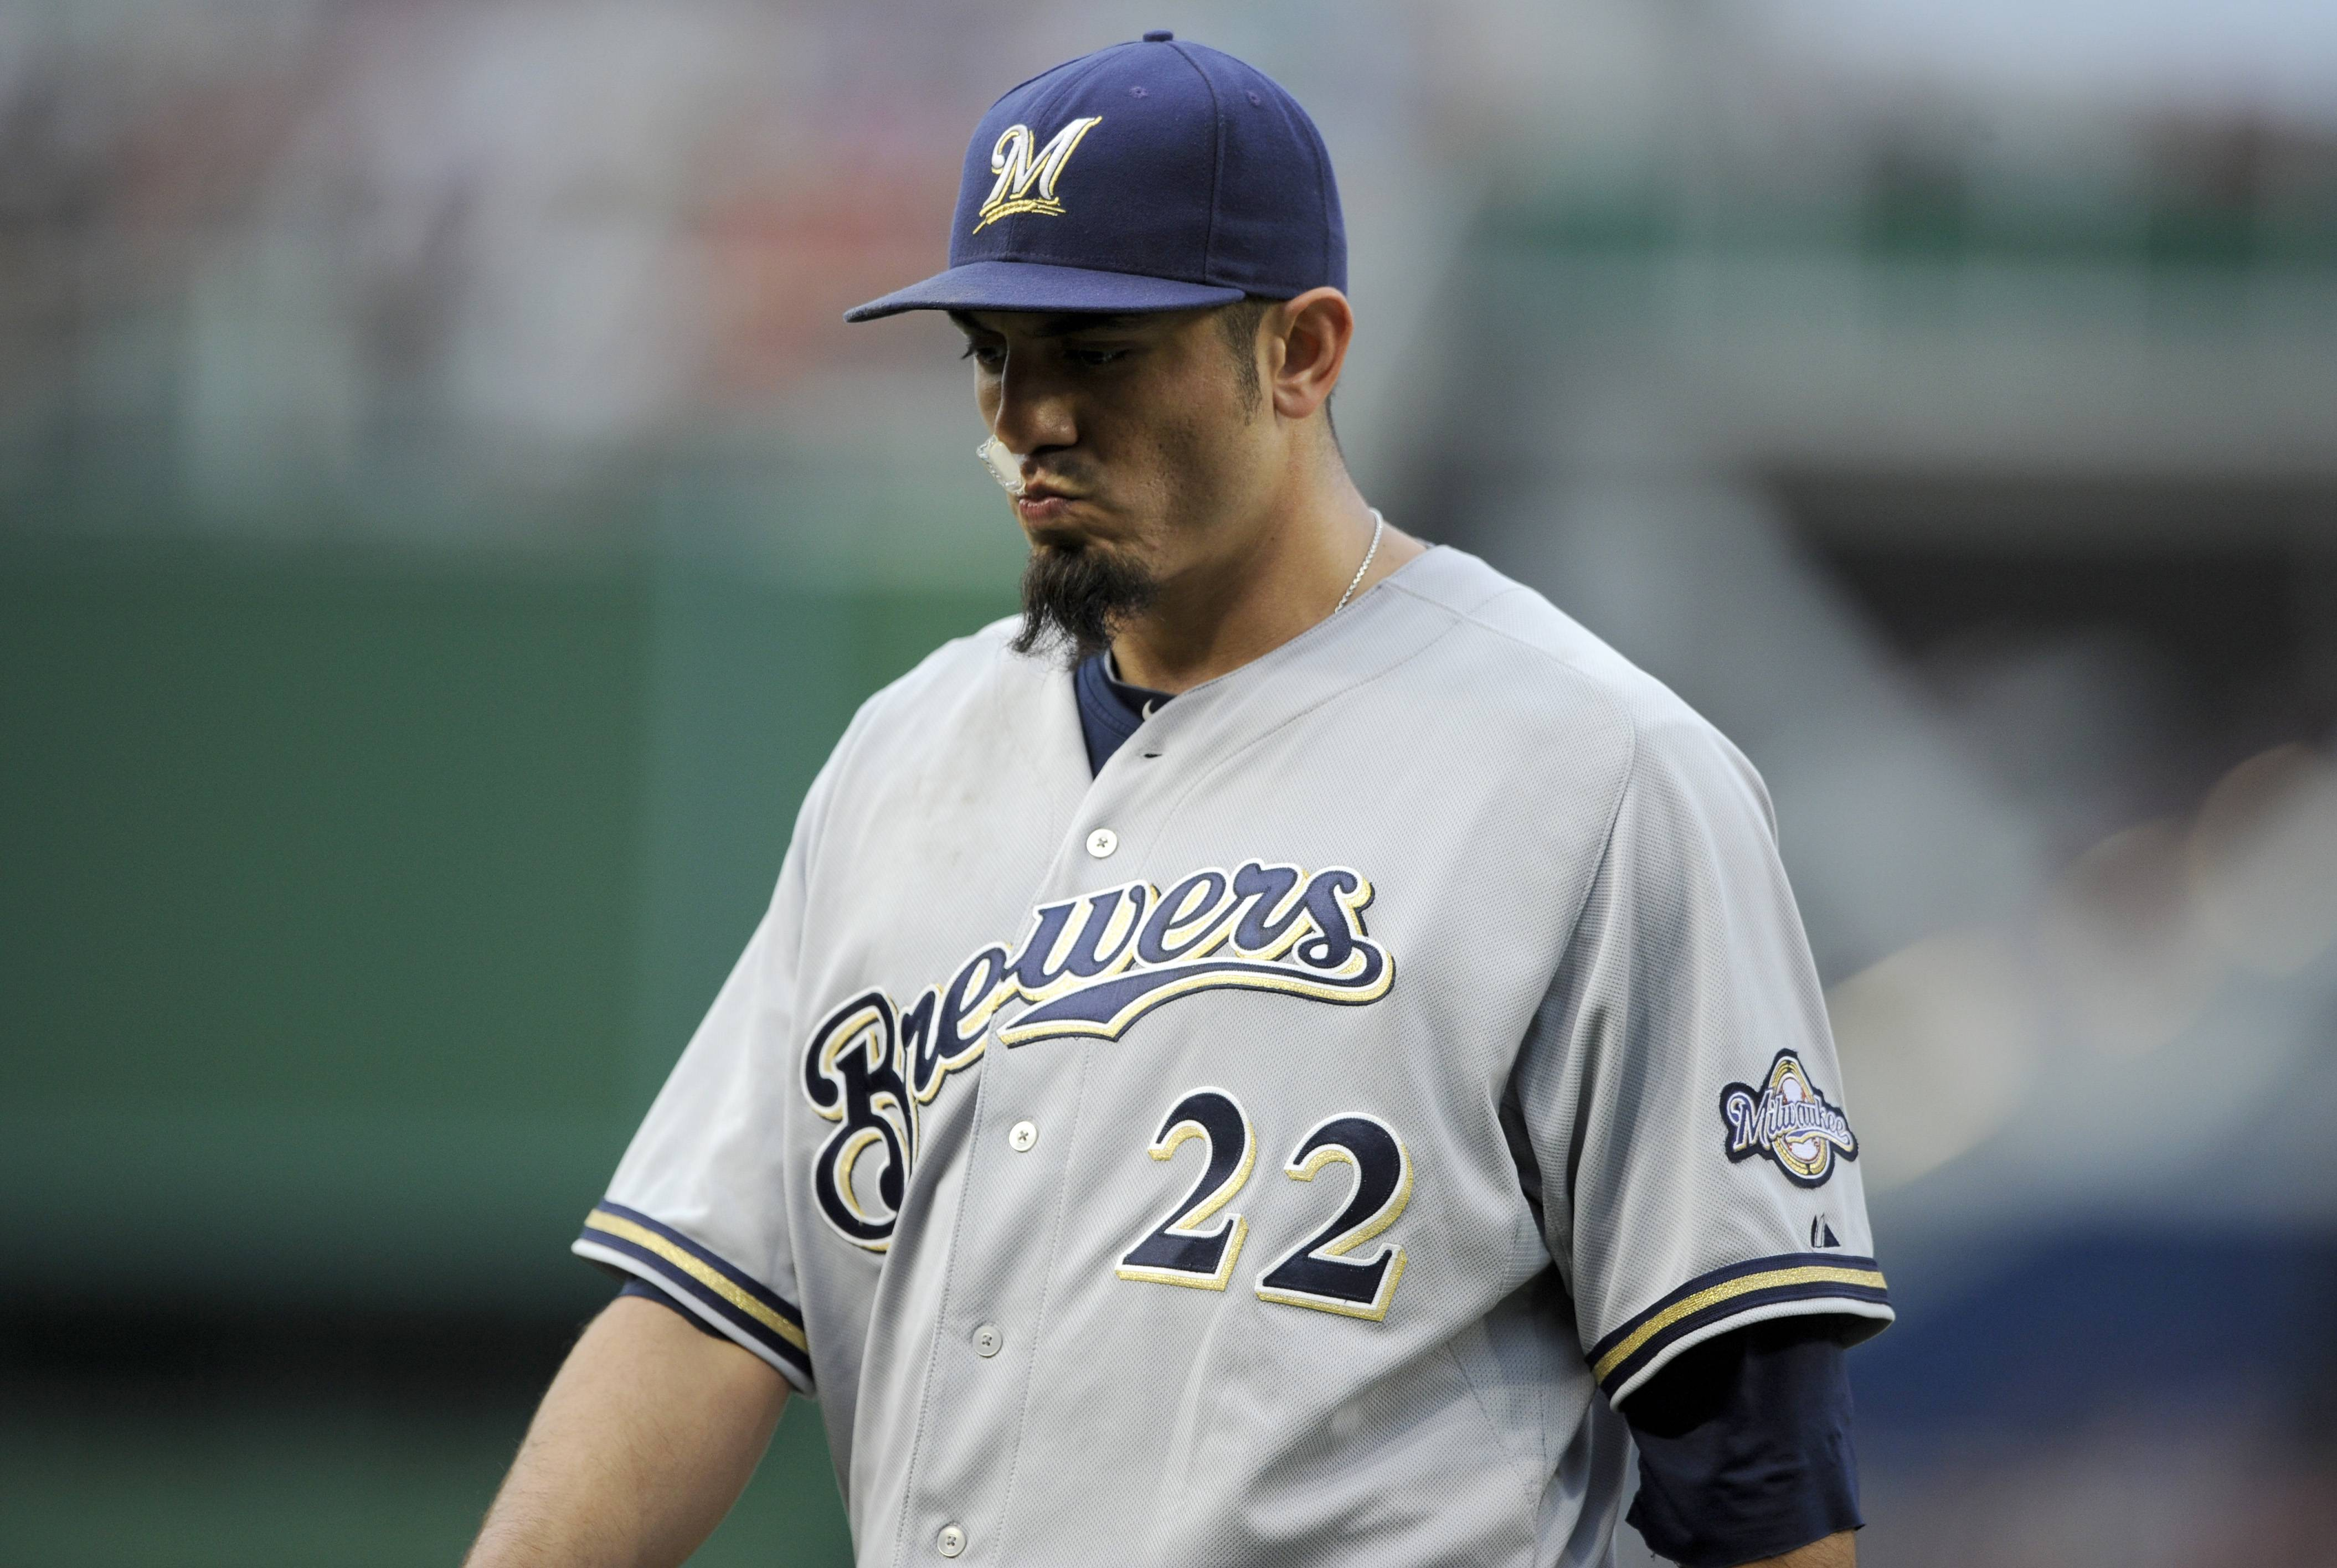 Milwaukee Brewers starting pitcher Matt Garza heads to the dugout after he was pulled from the baseball game against the Washington Nationals during the first inning Saturday, July 19, 2014, in Washington.